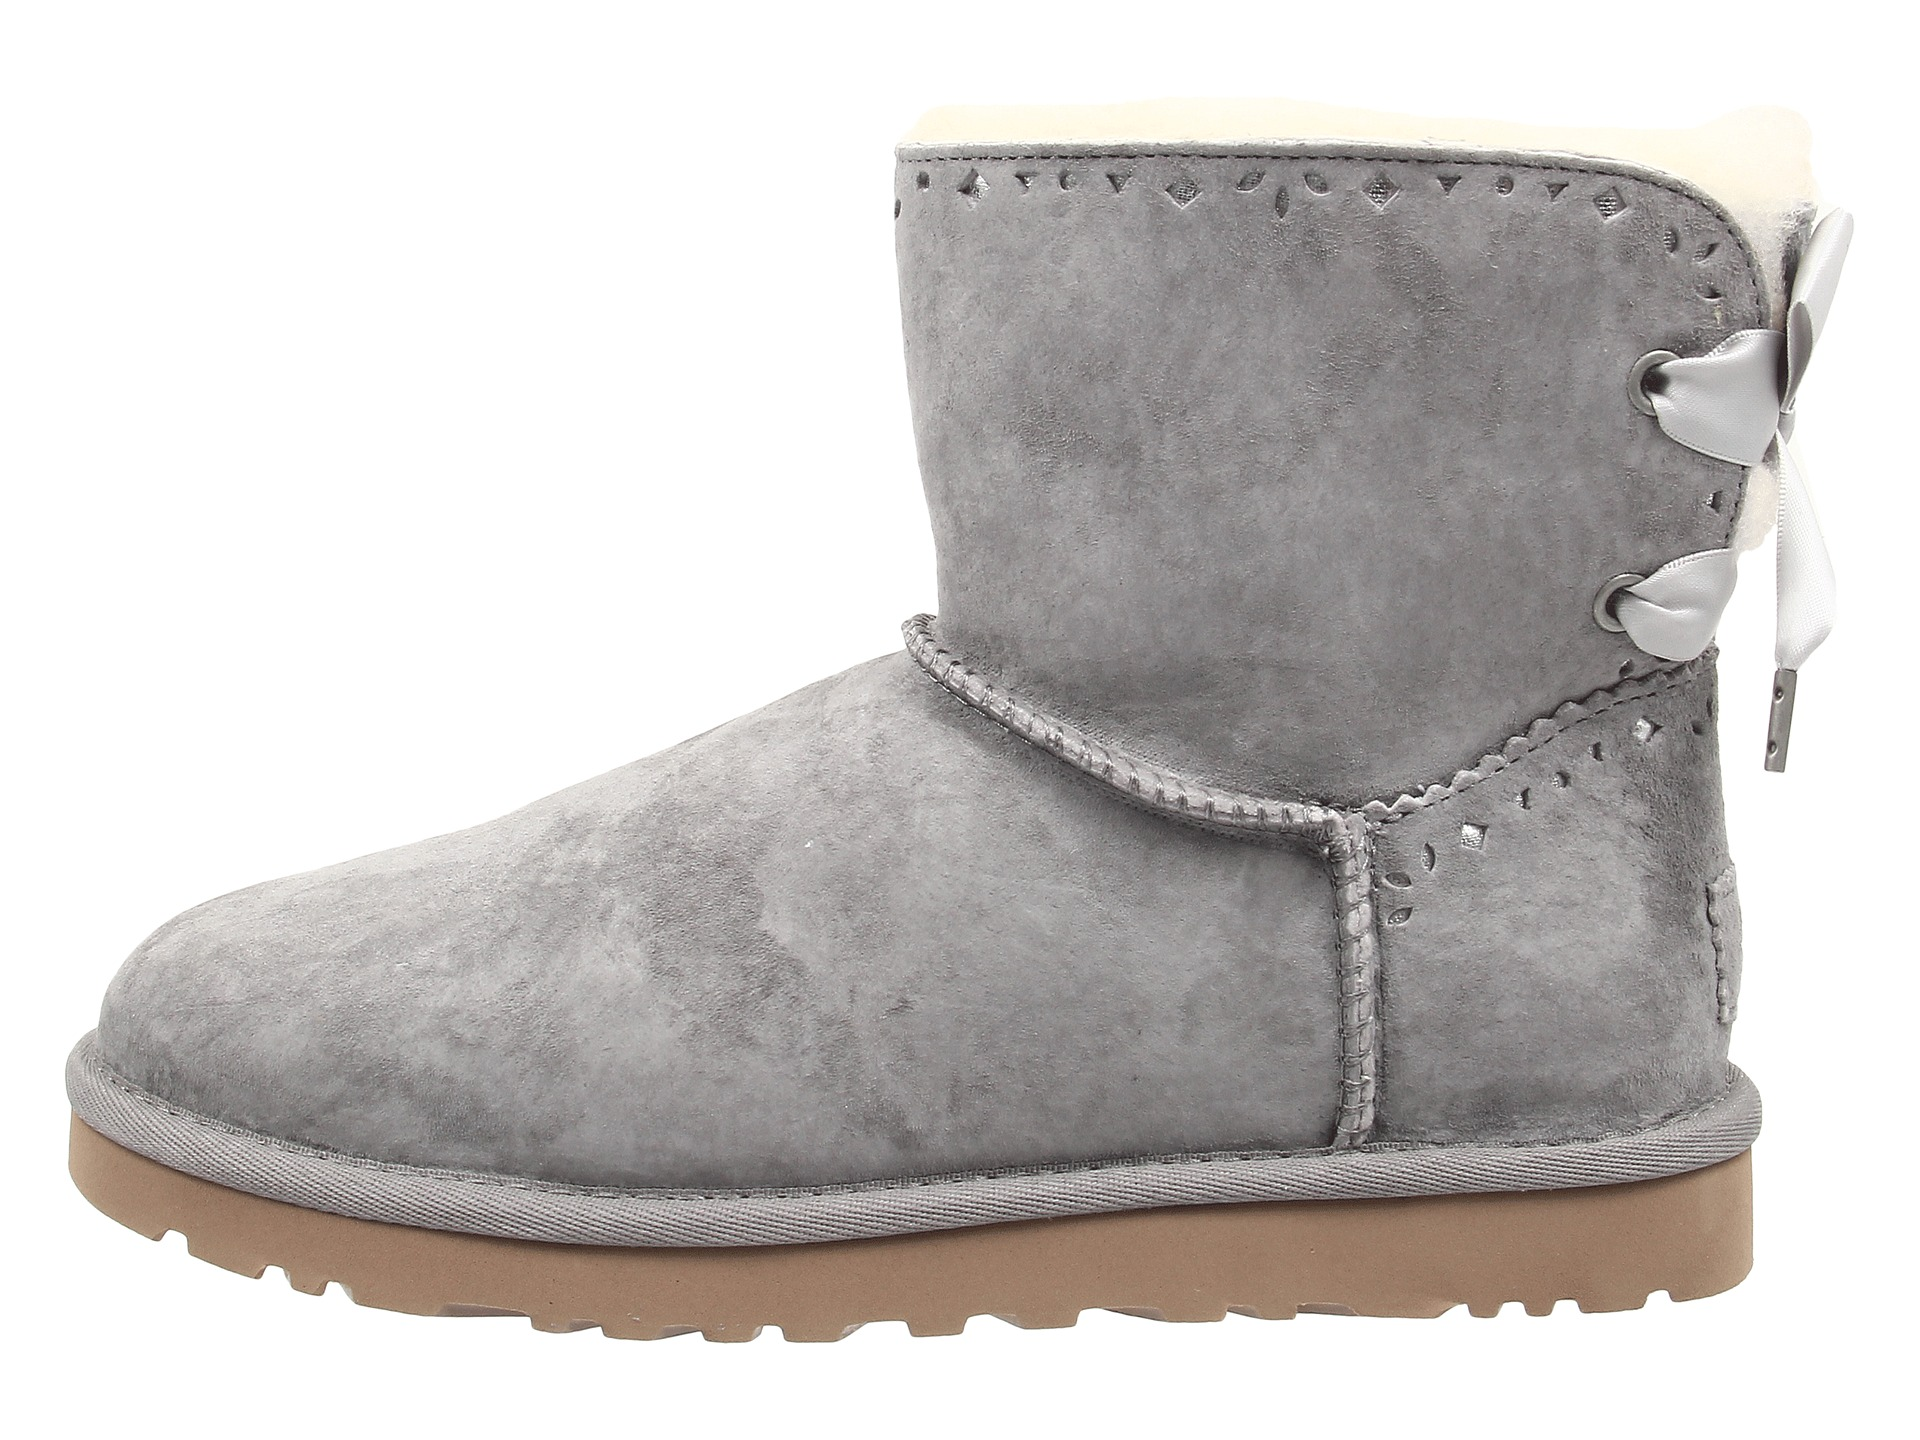 The Walking Company has UGG brand boots on sale as low as $45, while the traditional Classic Short boot (pictured above) is ugg boots walking company on sale for $ This is the best price found for women's UGG boots new.